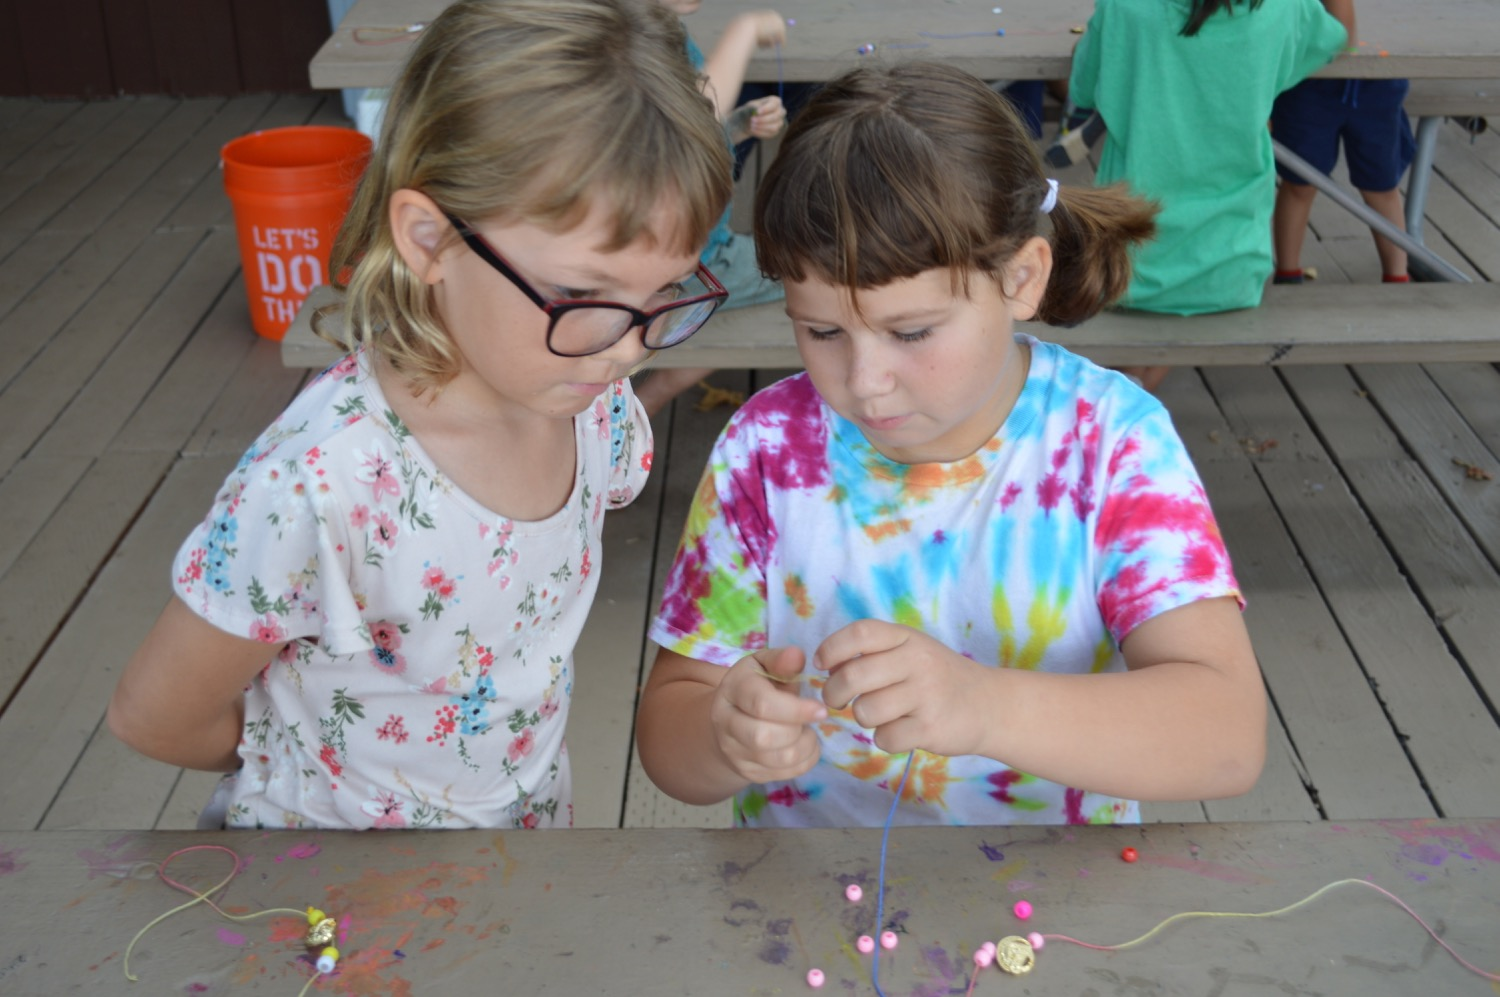 The #1 rule of camp is to have fun, and that's what we want for all of our campers.